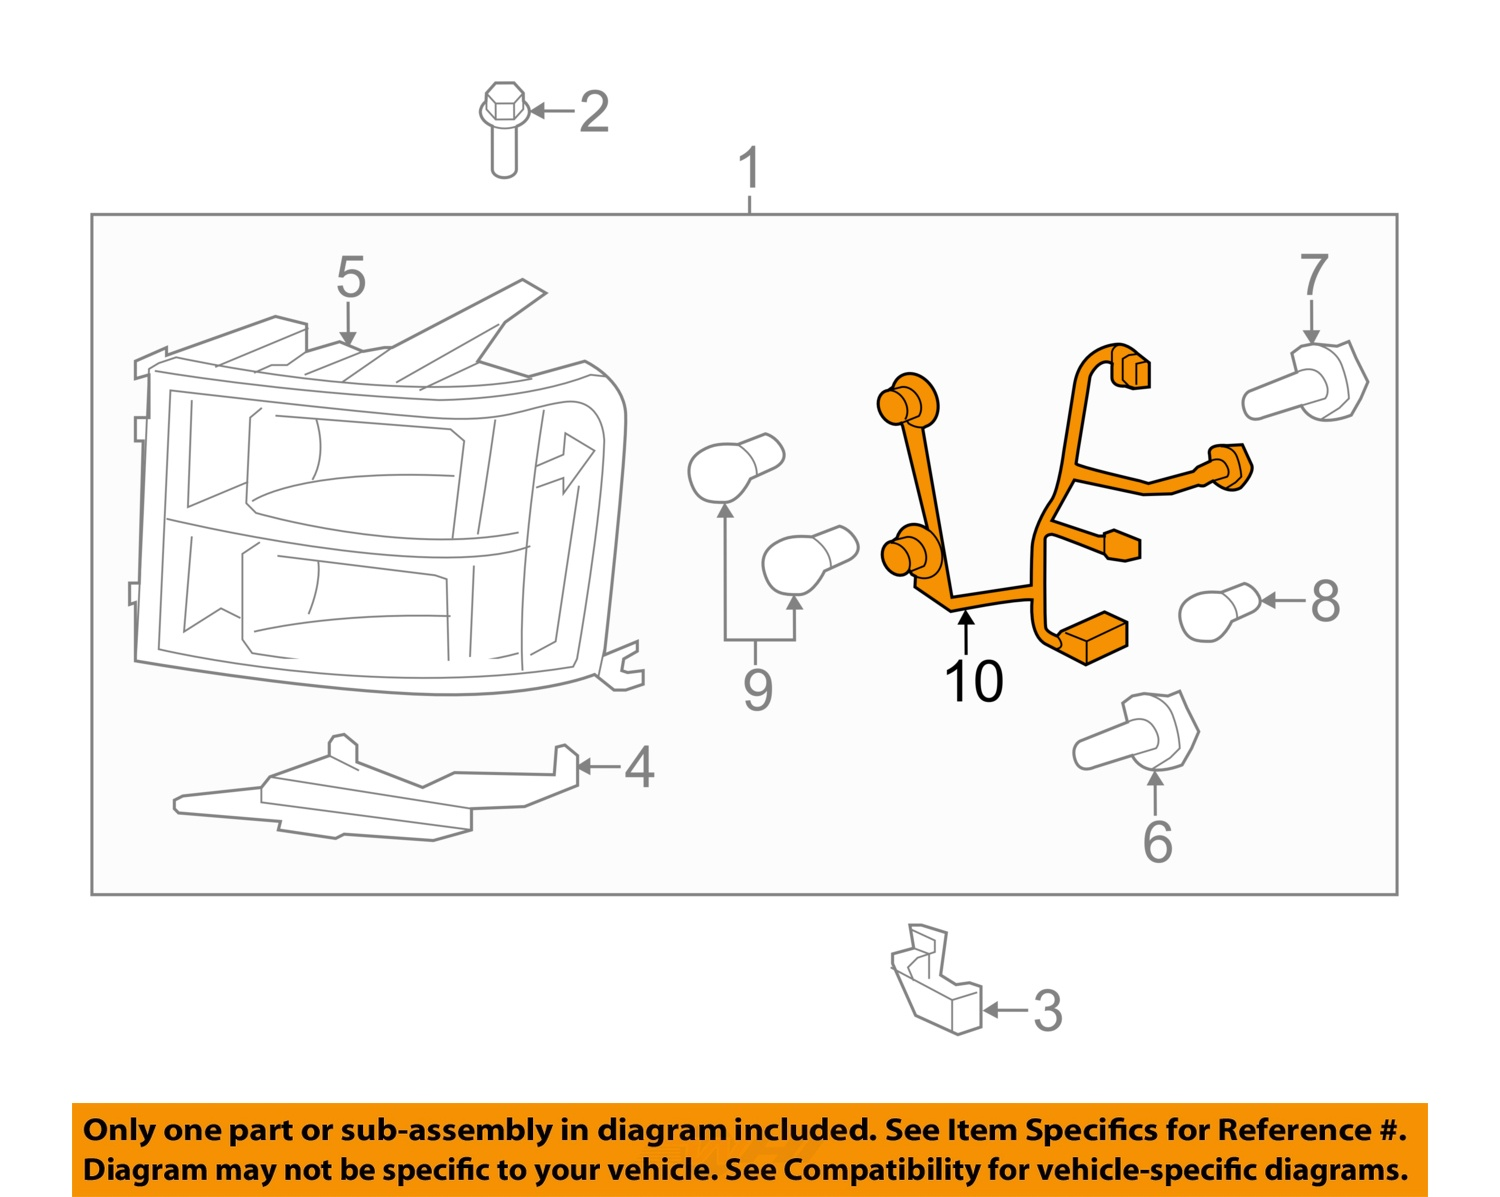 1990 gmc sierra wiring diagram 2013 gmc sierra wiring diagram 2007-2013 gmc sierra headlight wiring harness new gm ...